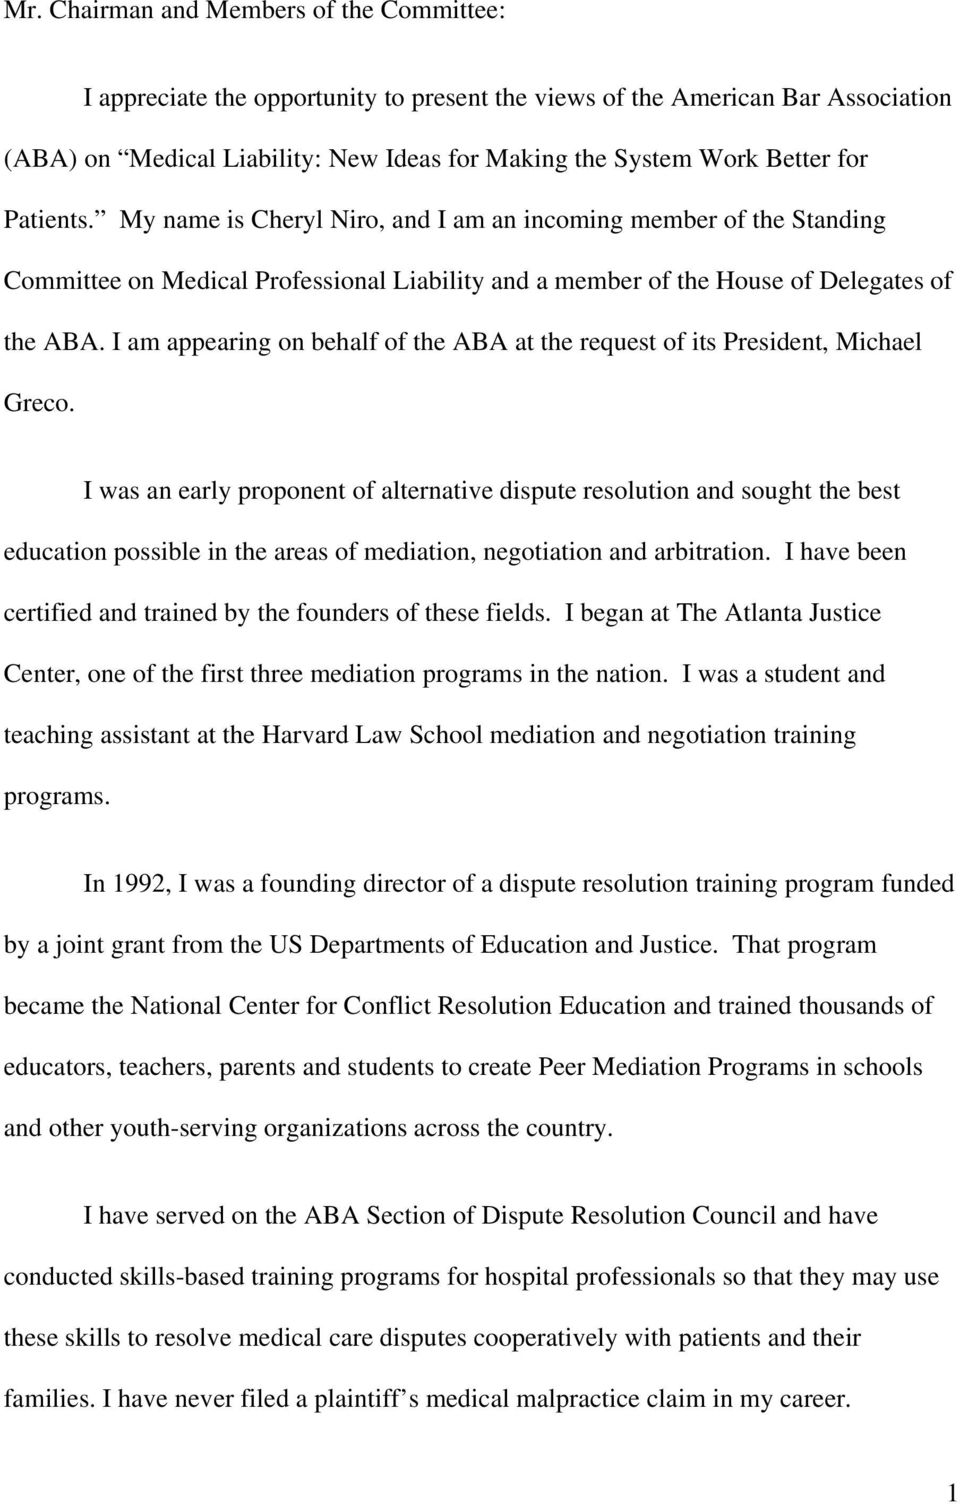 I am appearing on behalf of the ABA at the request of its President, Michael Greco.